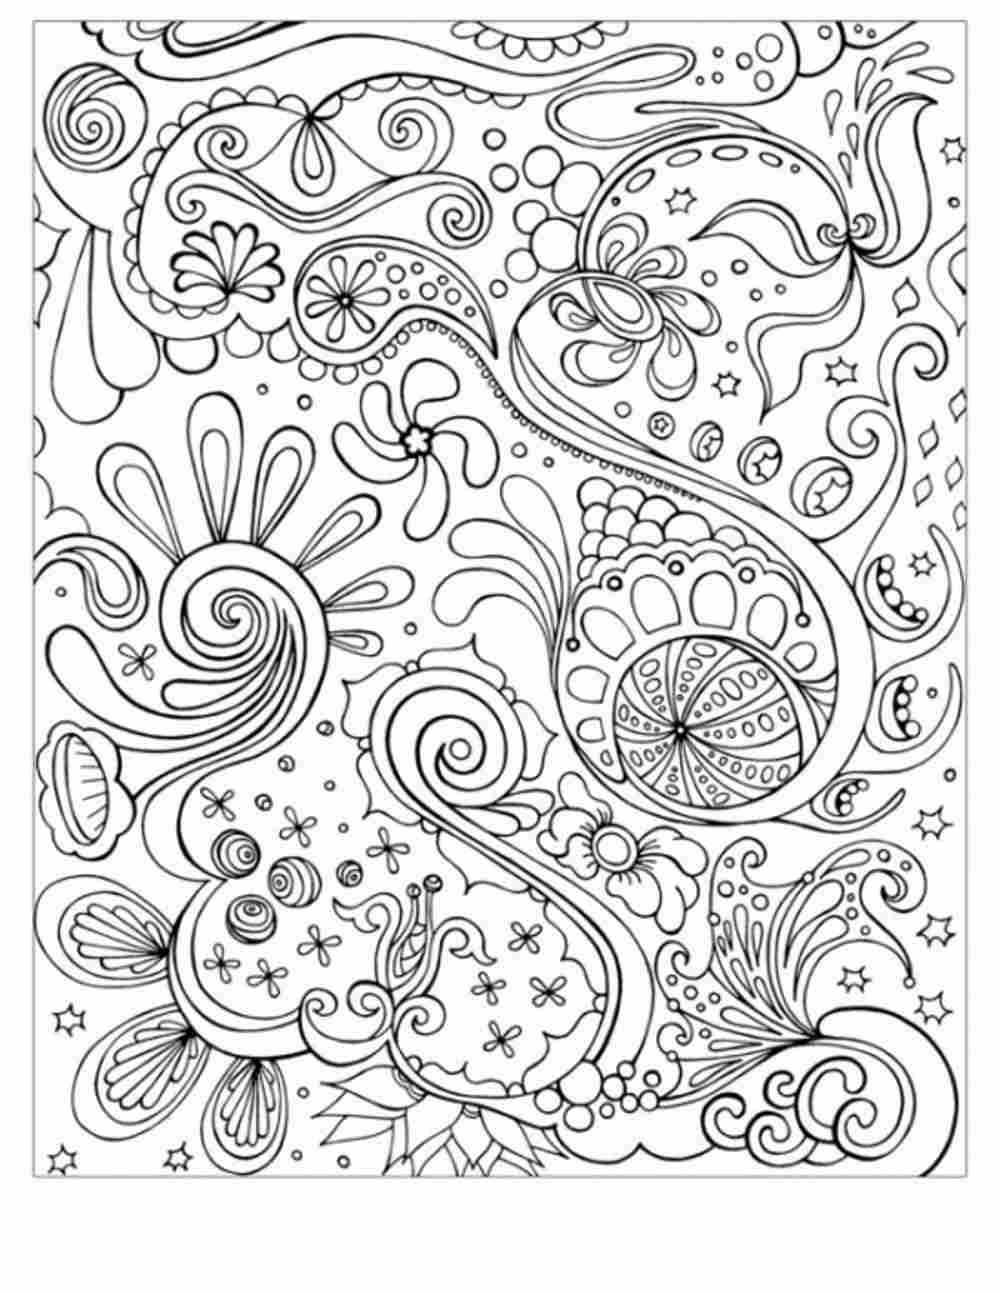 Free Printable Coloring Pages For Adults Pdf At Getdrawings Com